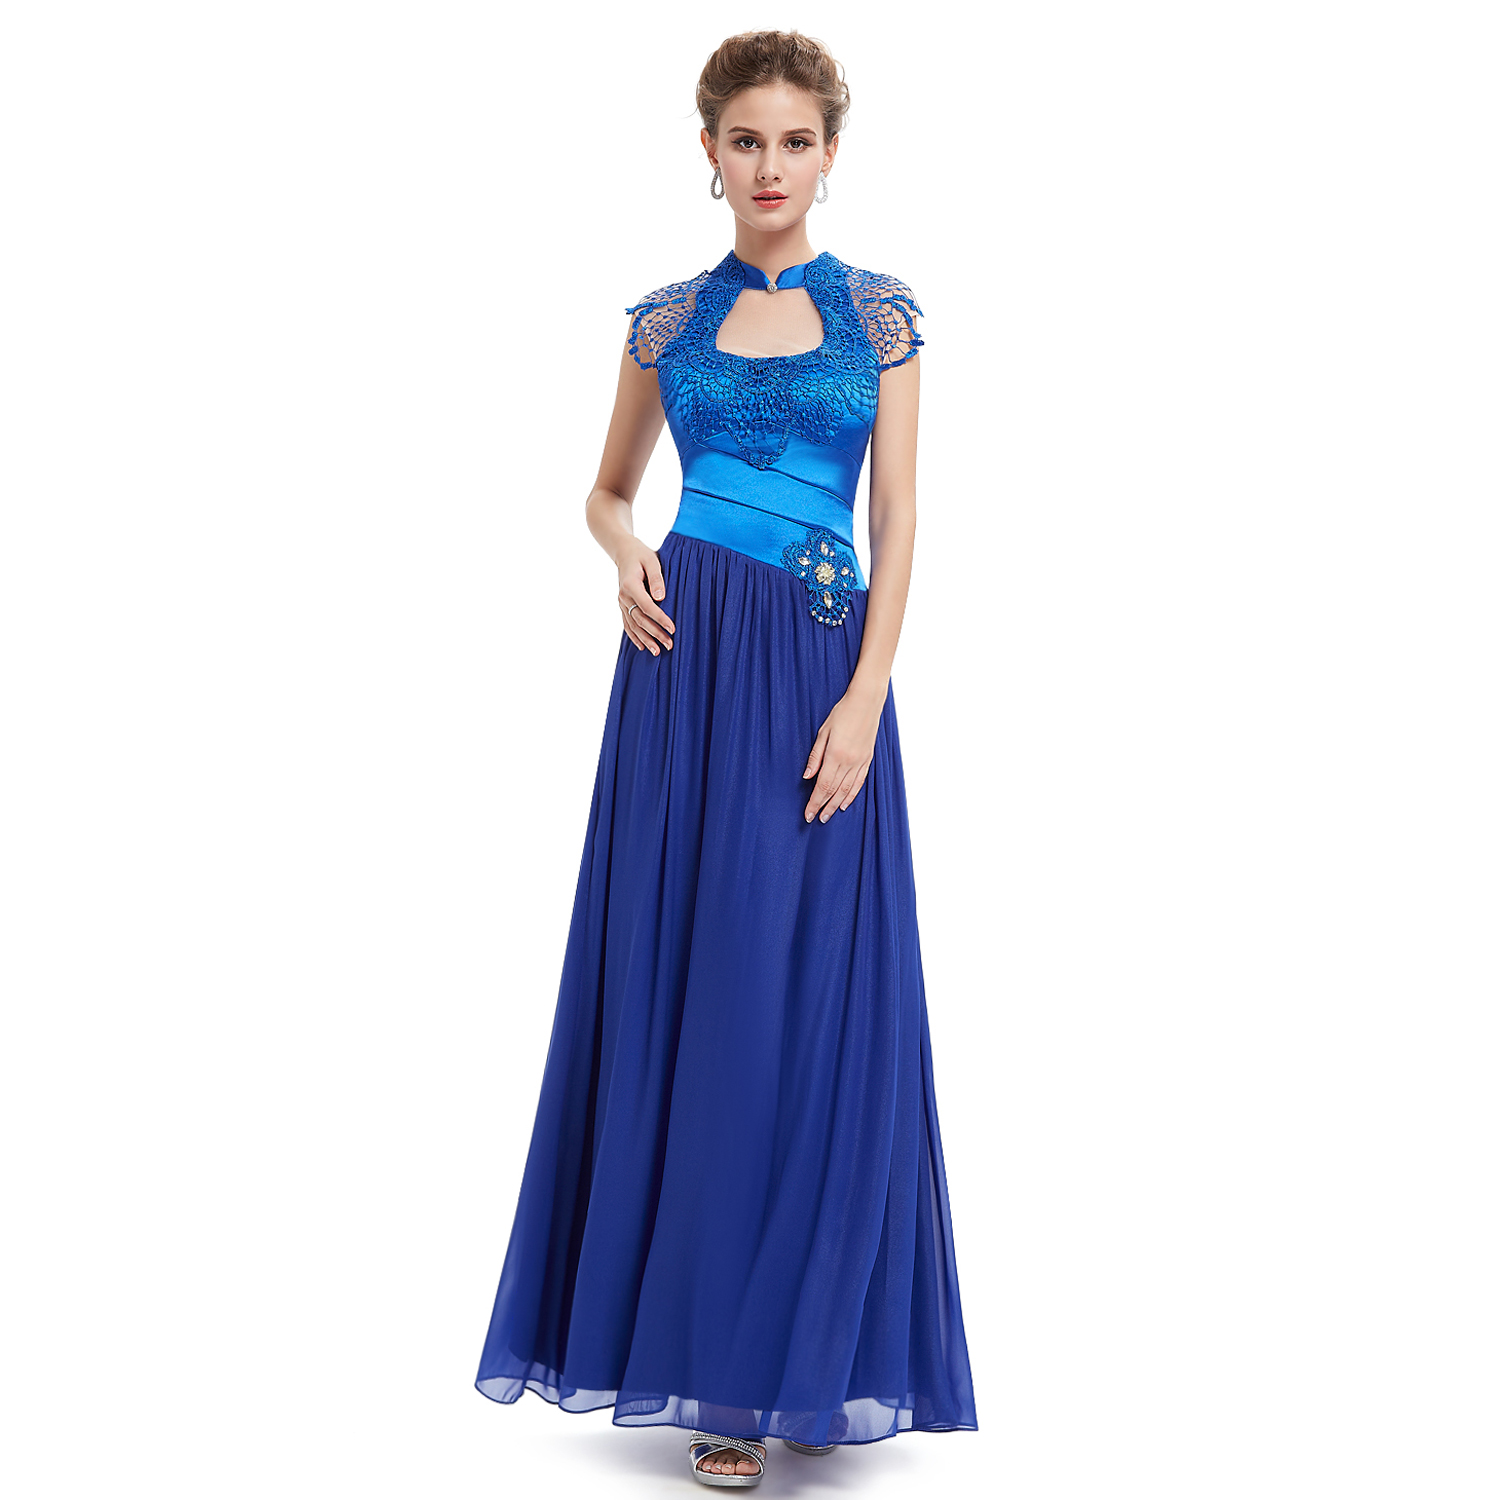 New-Ladies-Vintage-Blue-Lace-Long-Evening-Formal-Prom-Dress-Gown-09948-Size-6-18